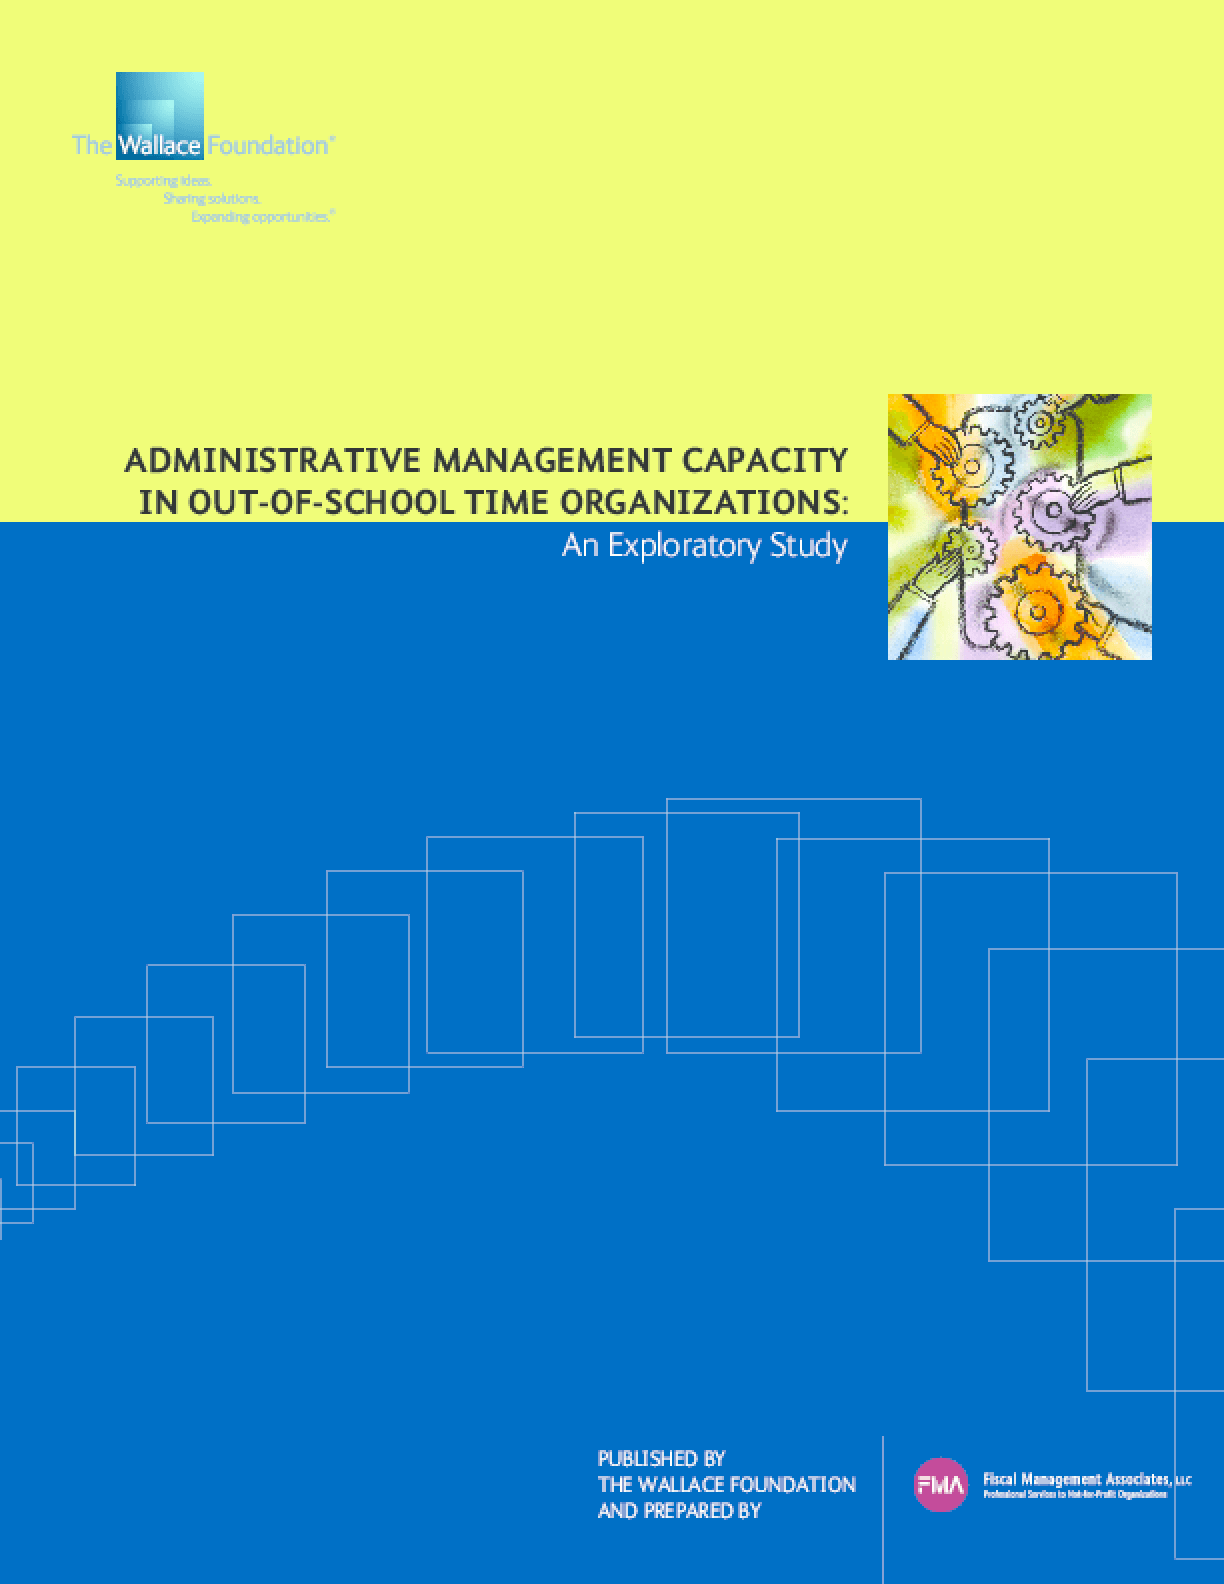 Administrative Management Capacity in Out-of-School Time Organizations: An Exploratory Study